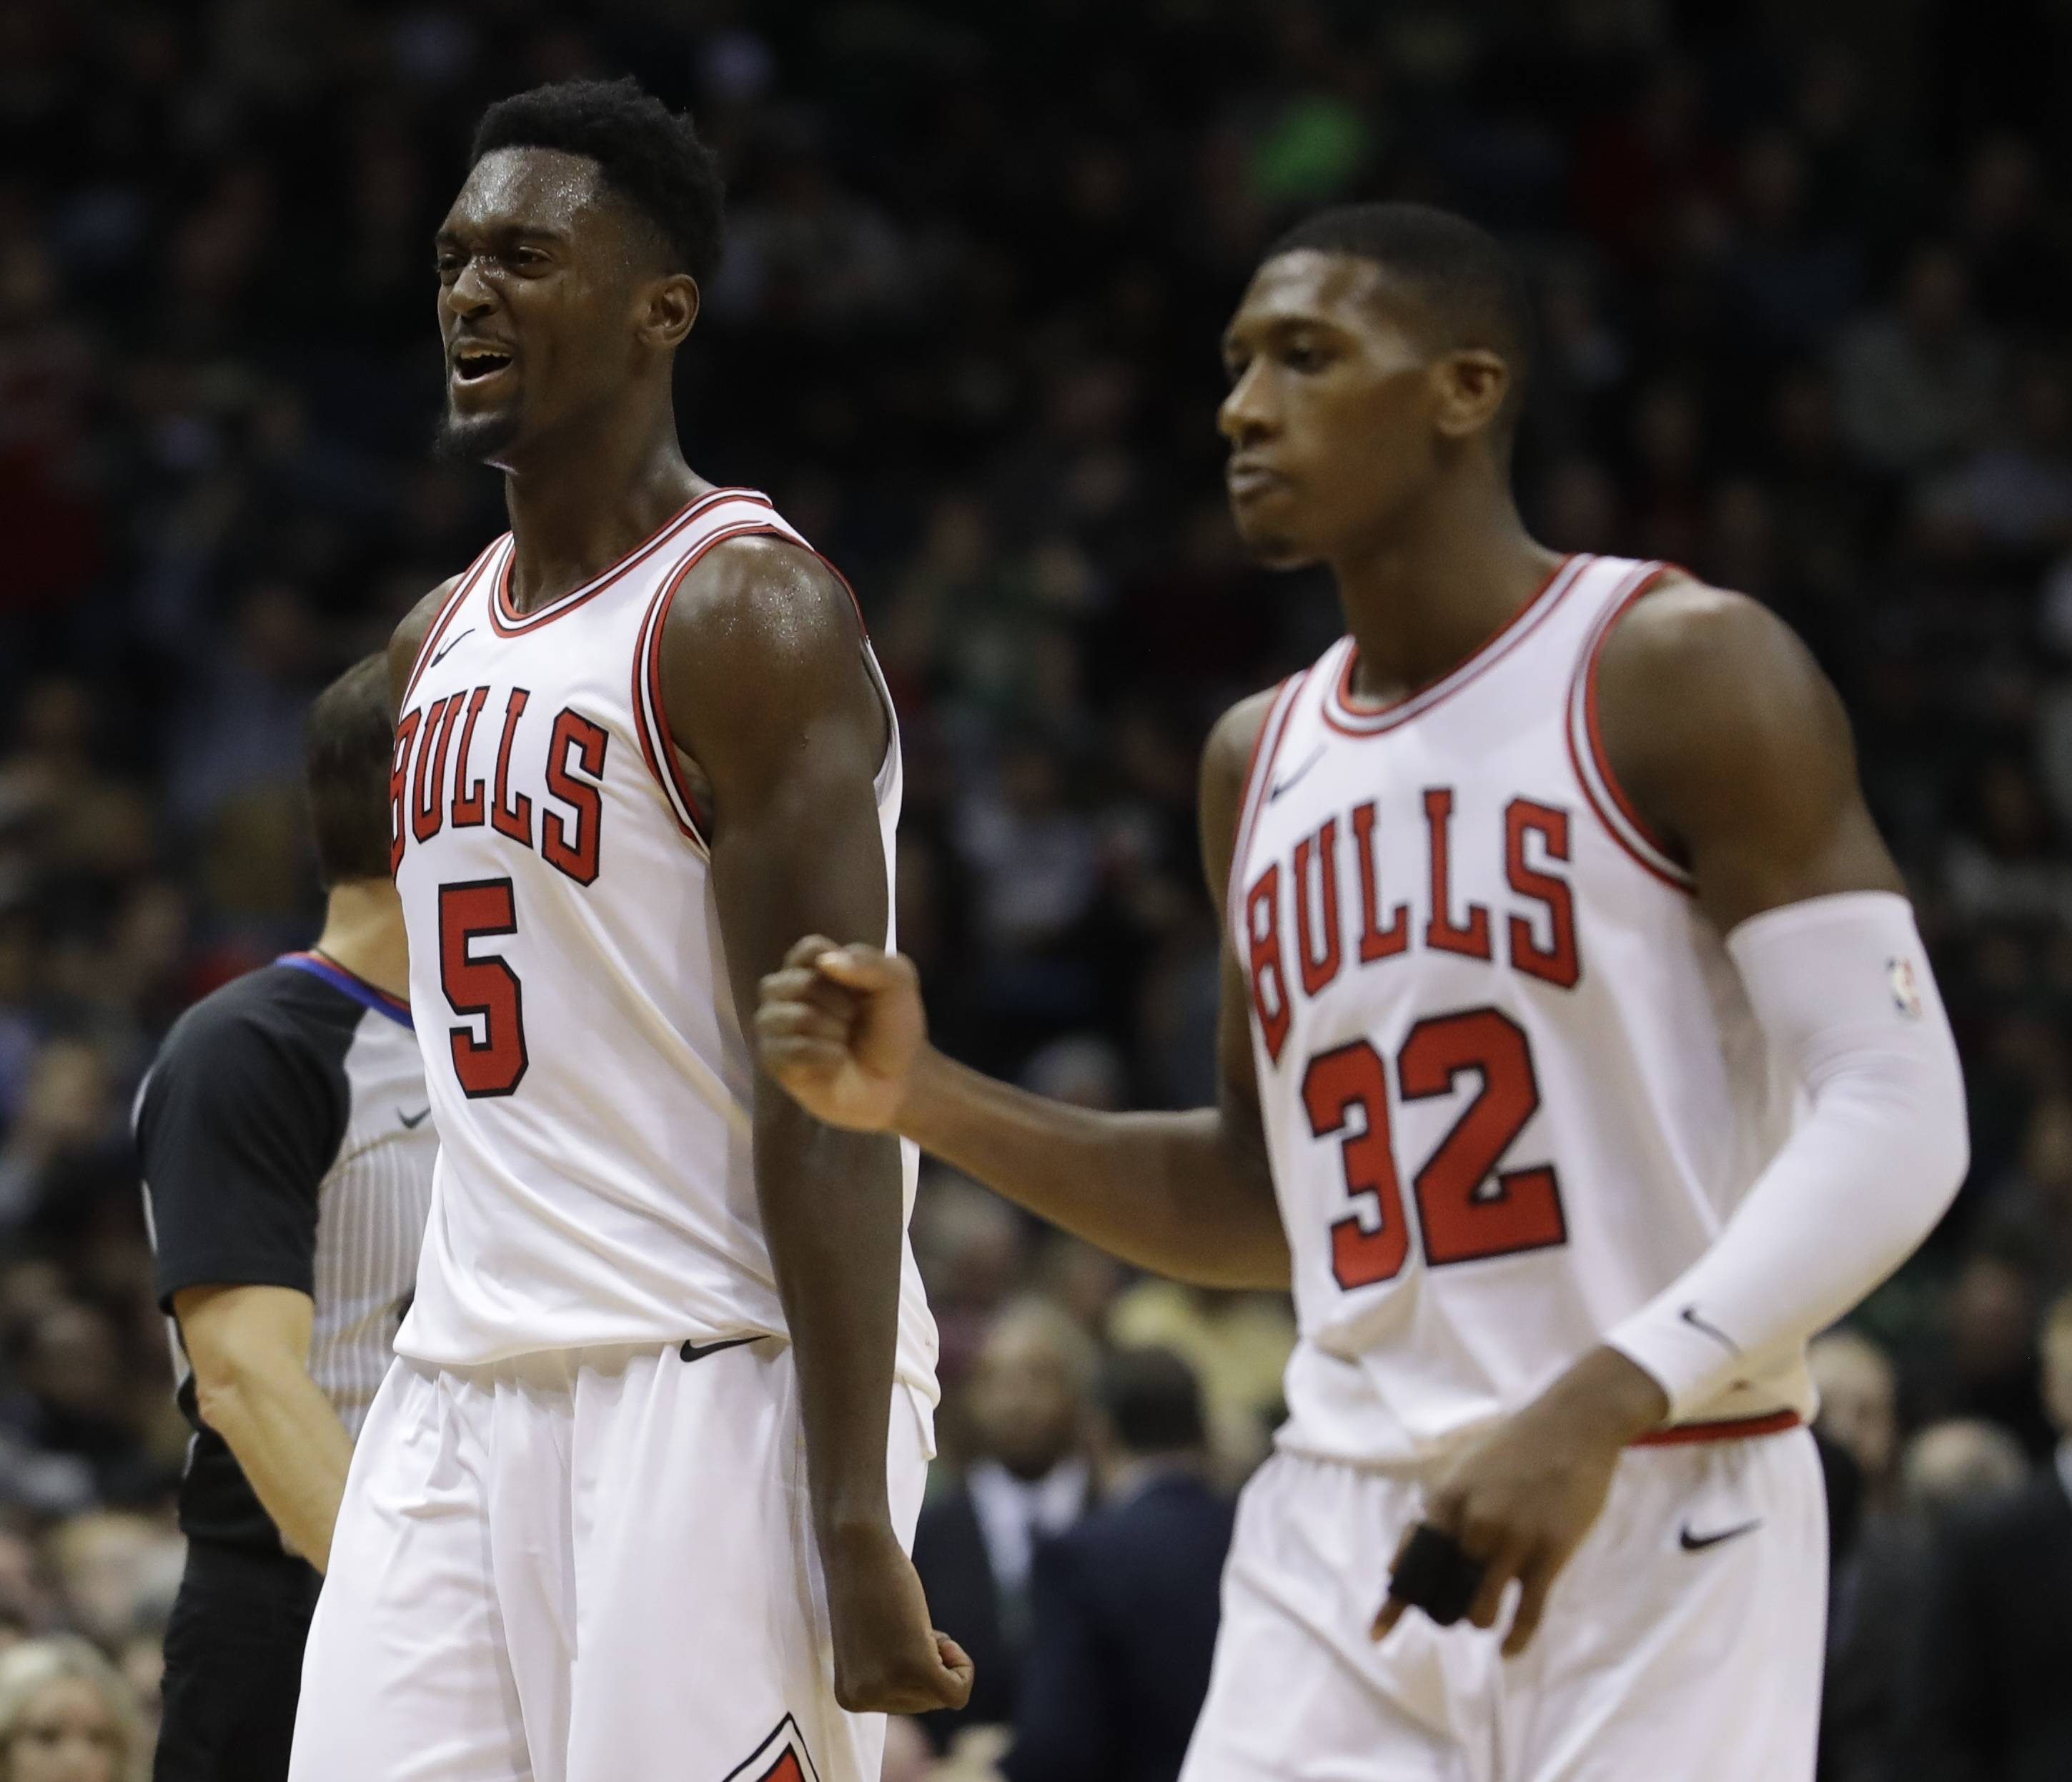 Chicago Bulls' Bobby Portis (5) and Kris Dunn celebrate in the final minutes of the second half of an NBA basketball game against the Milwaukee Bucks Friday, Dec. 15, 2017, in Milwaukee. The Bulls won 115-109. (AP Photo/Morry Gash)